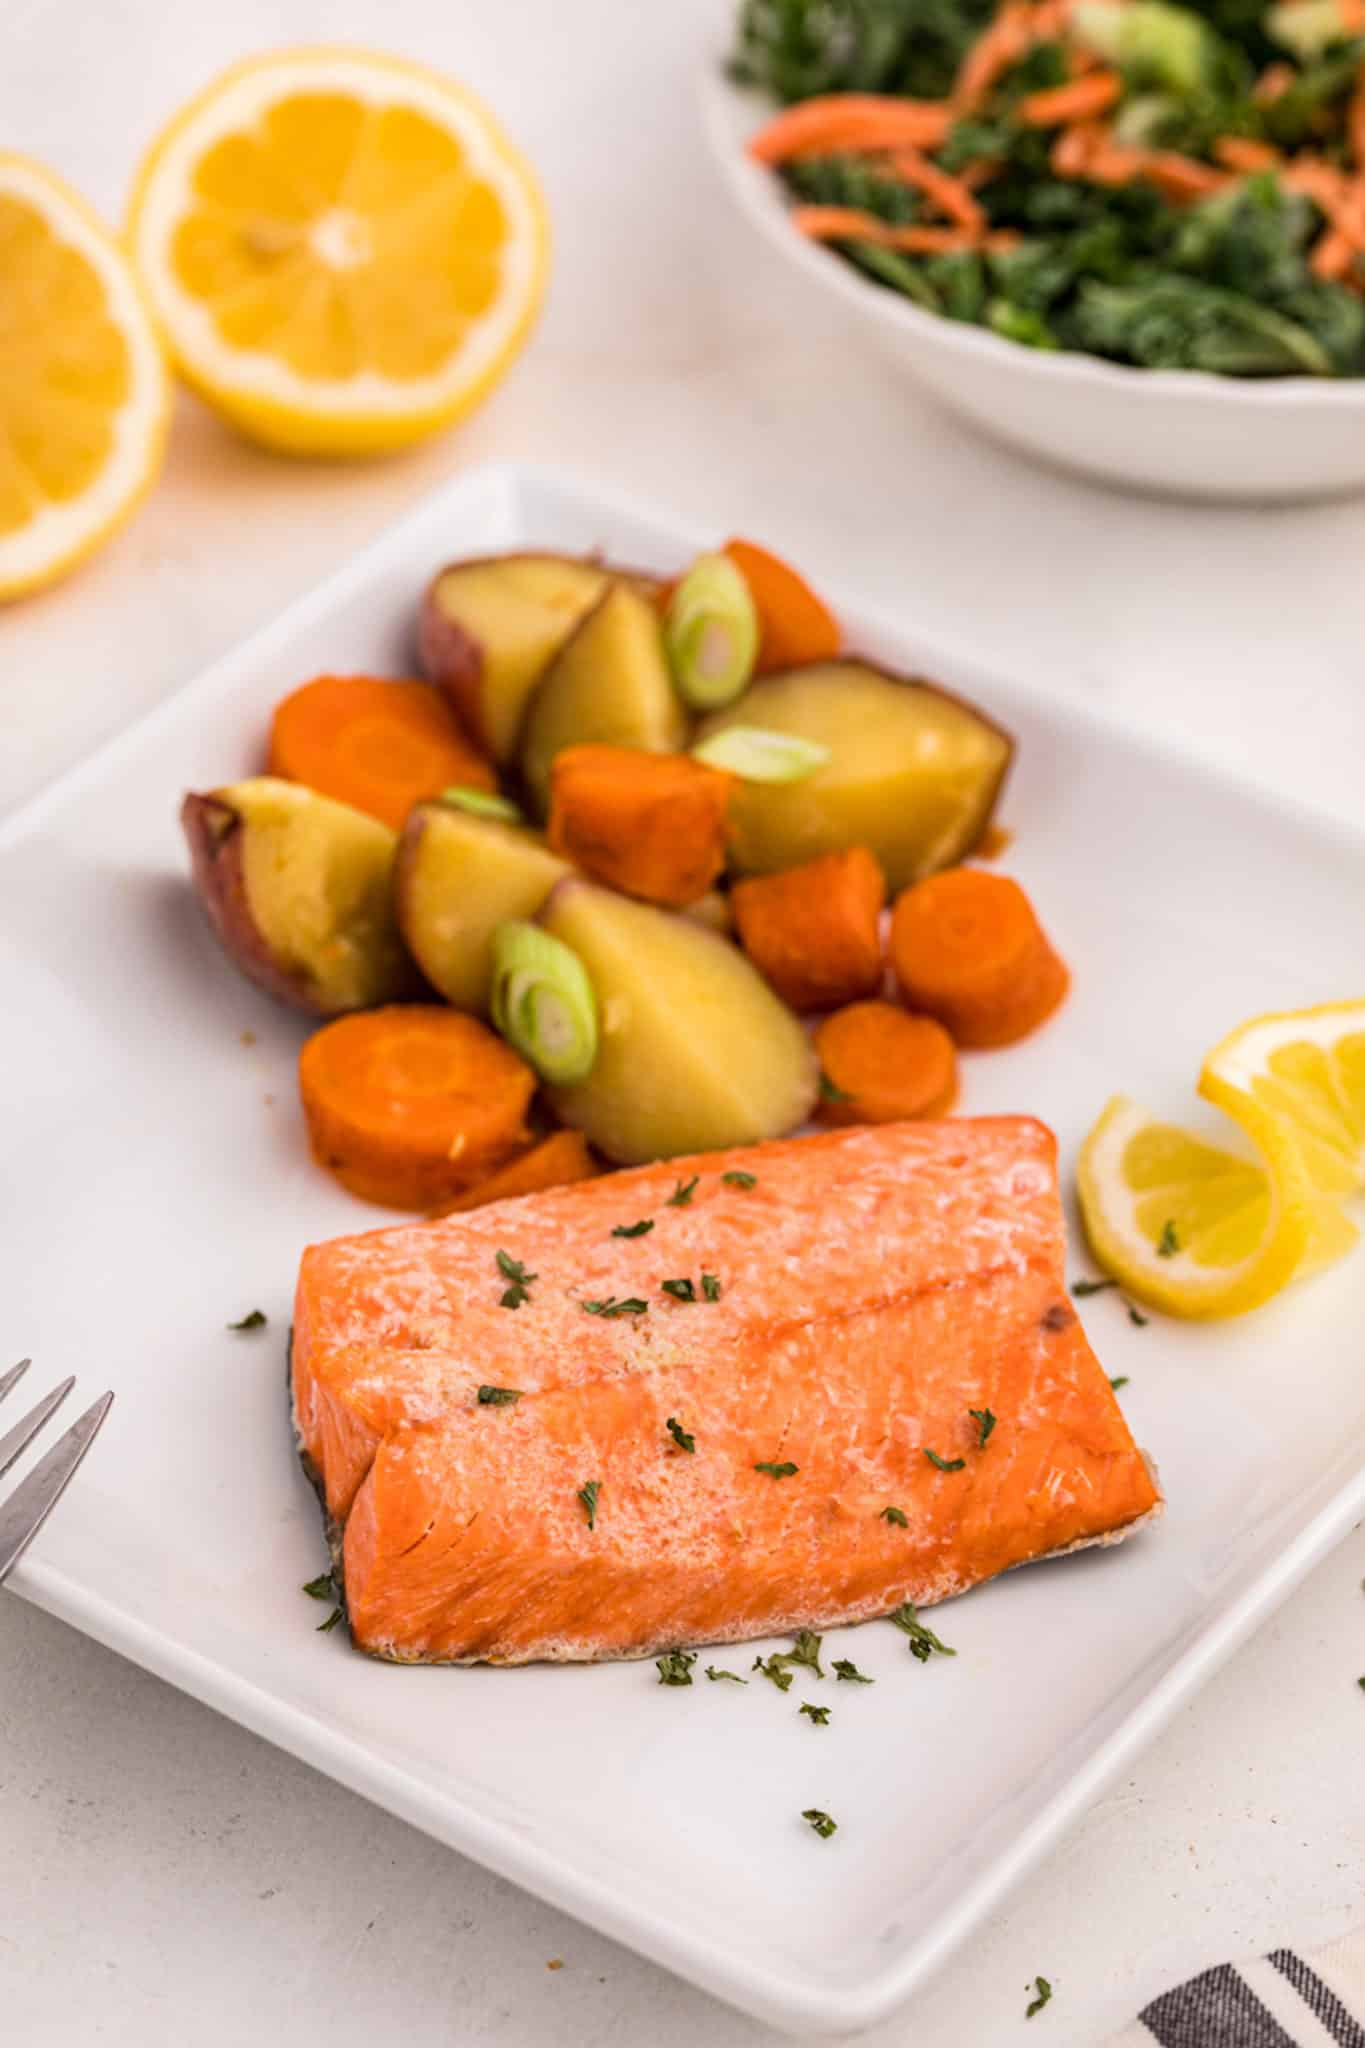 cooked salmon served with potatoes and carrots